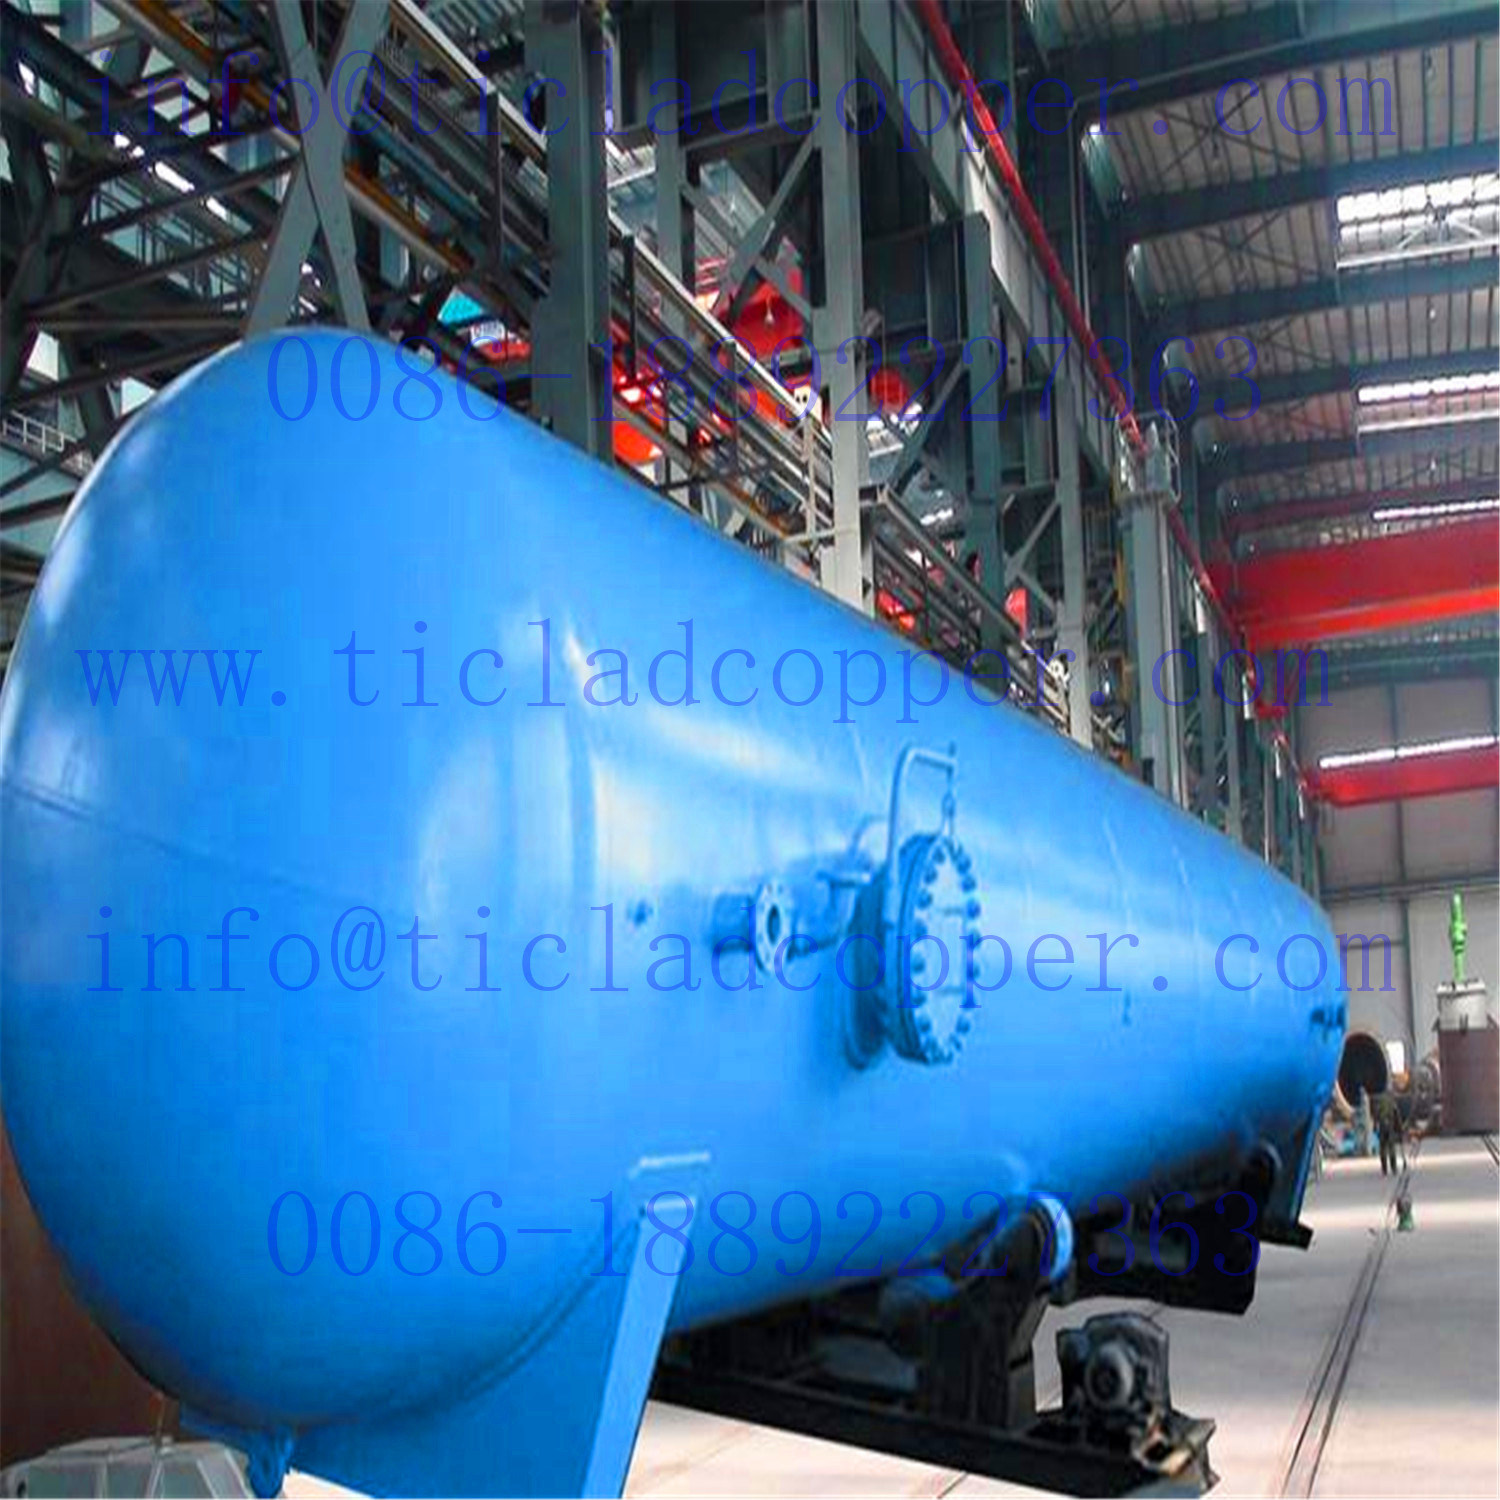 Reliable Steel High Pressure Vessel